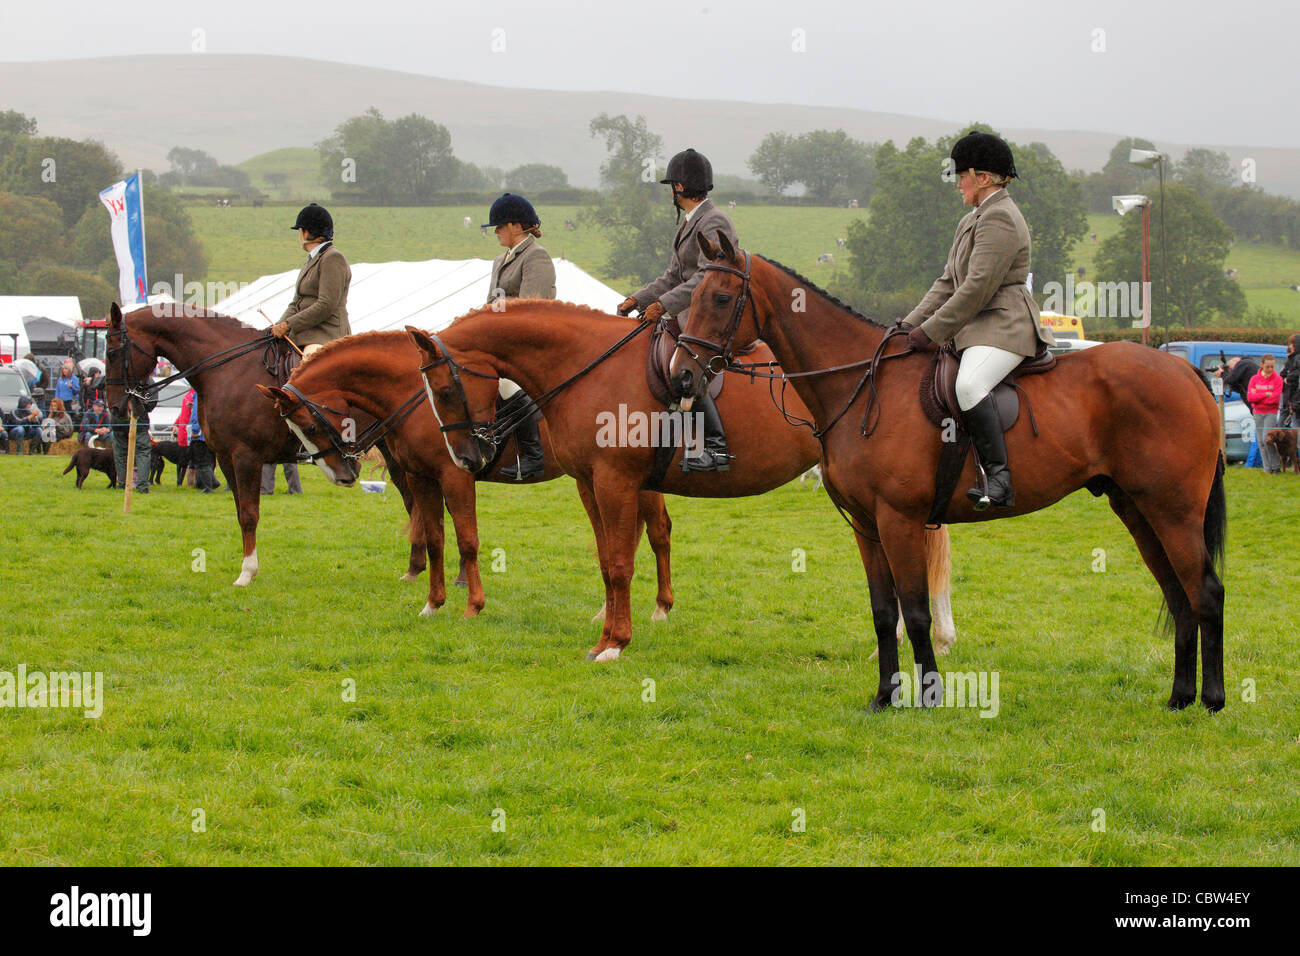 Horses and riders on the show ground at Hesket Newmarket Agricultural Society Show, Cumbria, England, UK - Stock Image